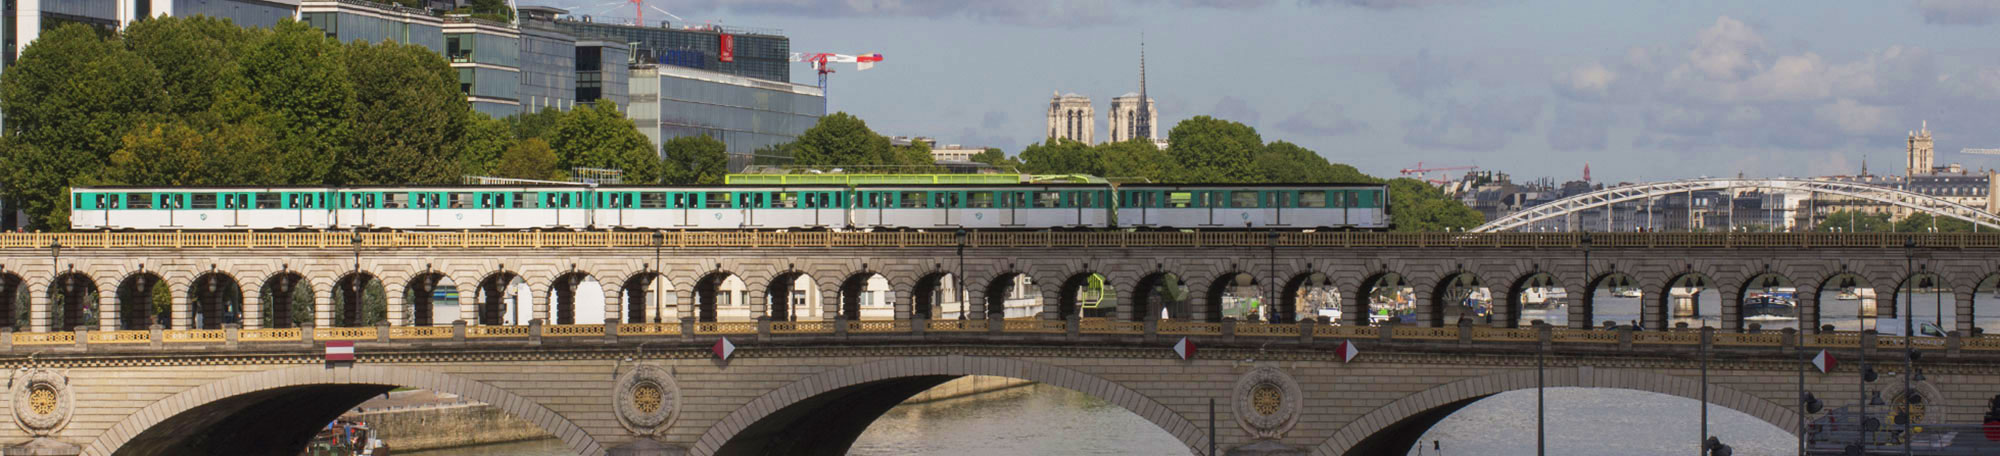 The Metro passes over Pont de Bercy near the University of Chicago's Center in Paris along the River Seine.